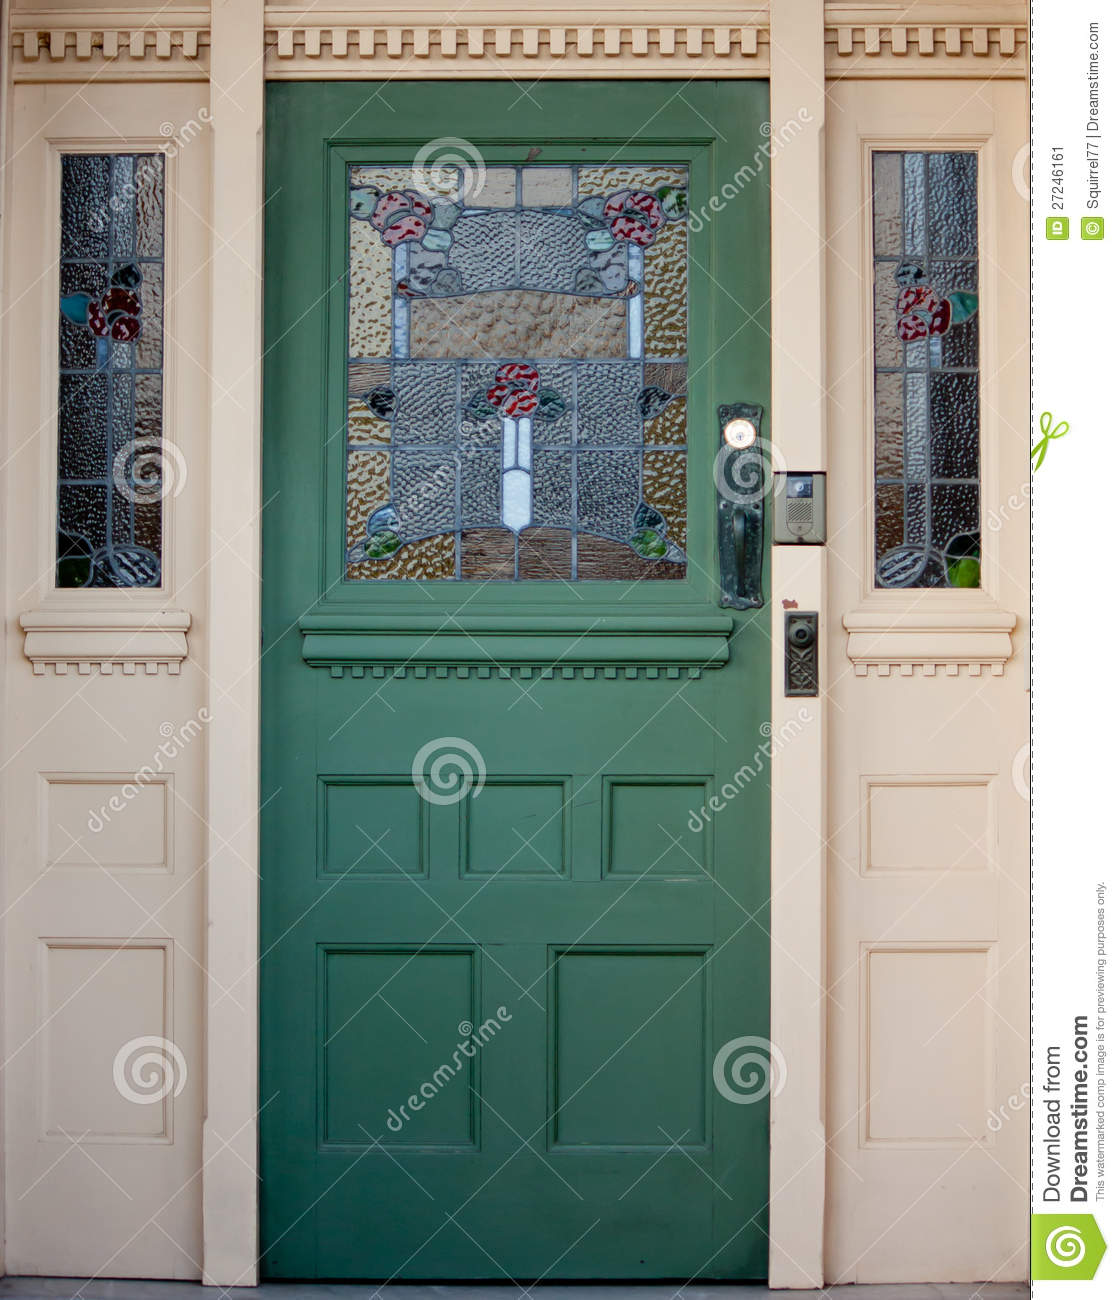 1300 #233E39 Vintage Wooden Entrance Door With Stained Glass Stock Image Image  wallpaper Wooden Doors With Glass Panels 42651120